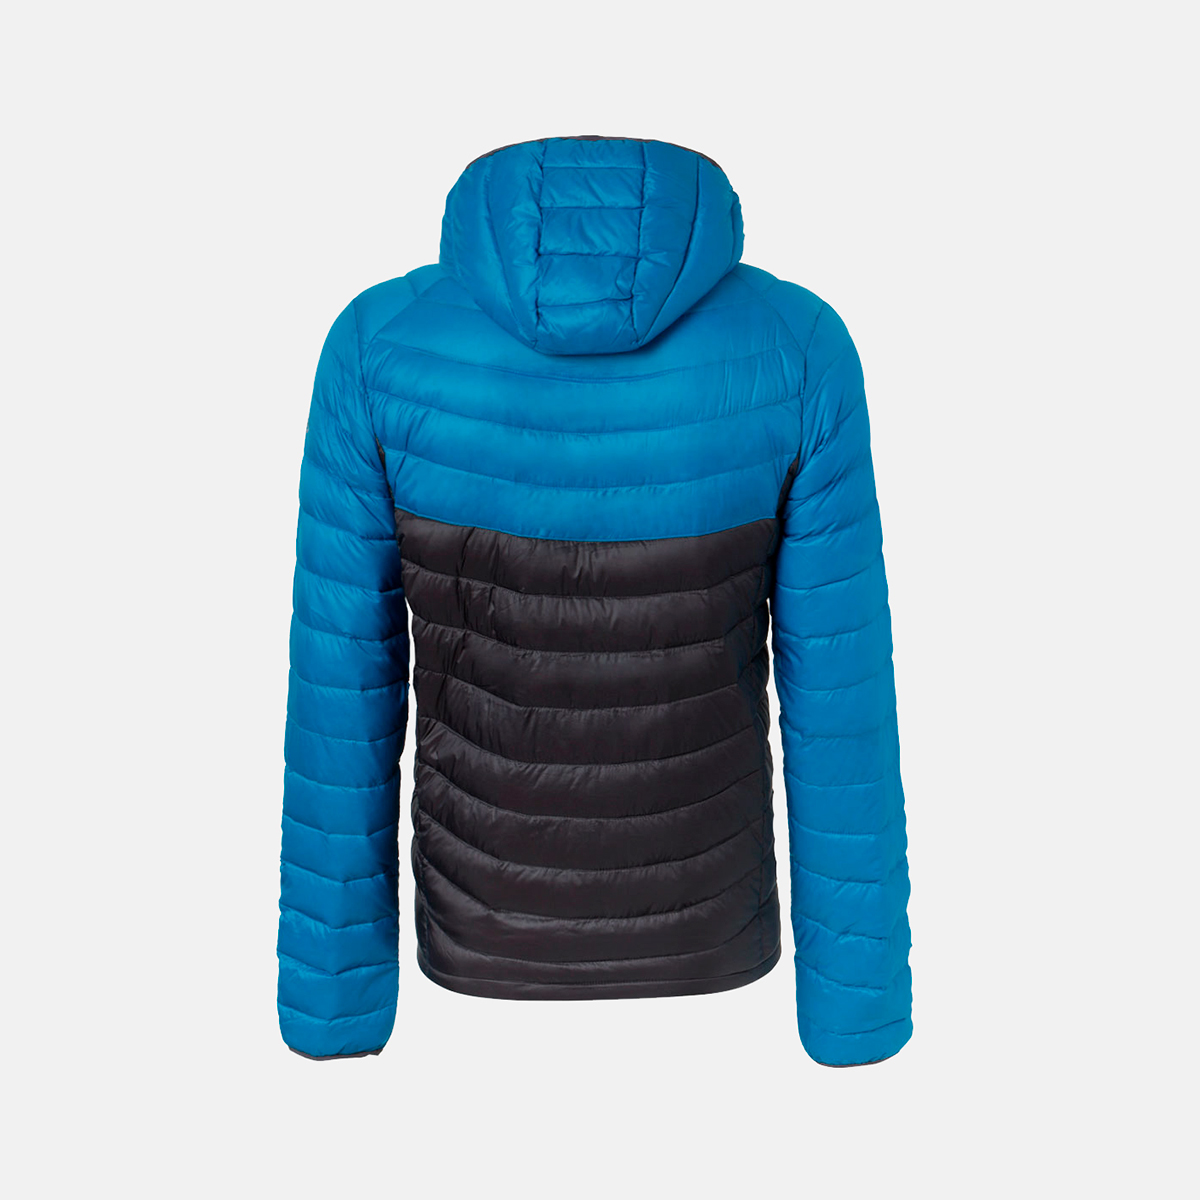 MAN'S ALSEK DOWN JACKET WITH HOOD BLUE